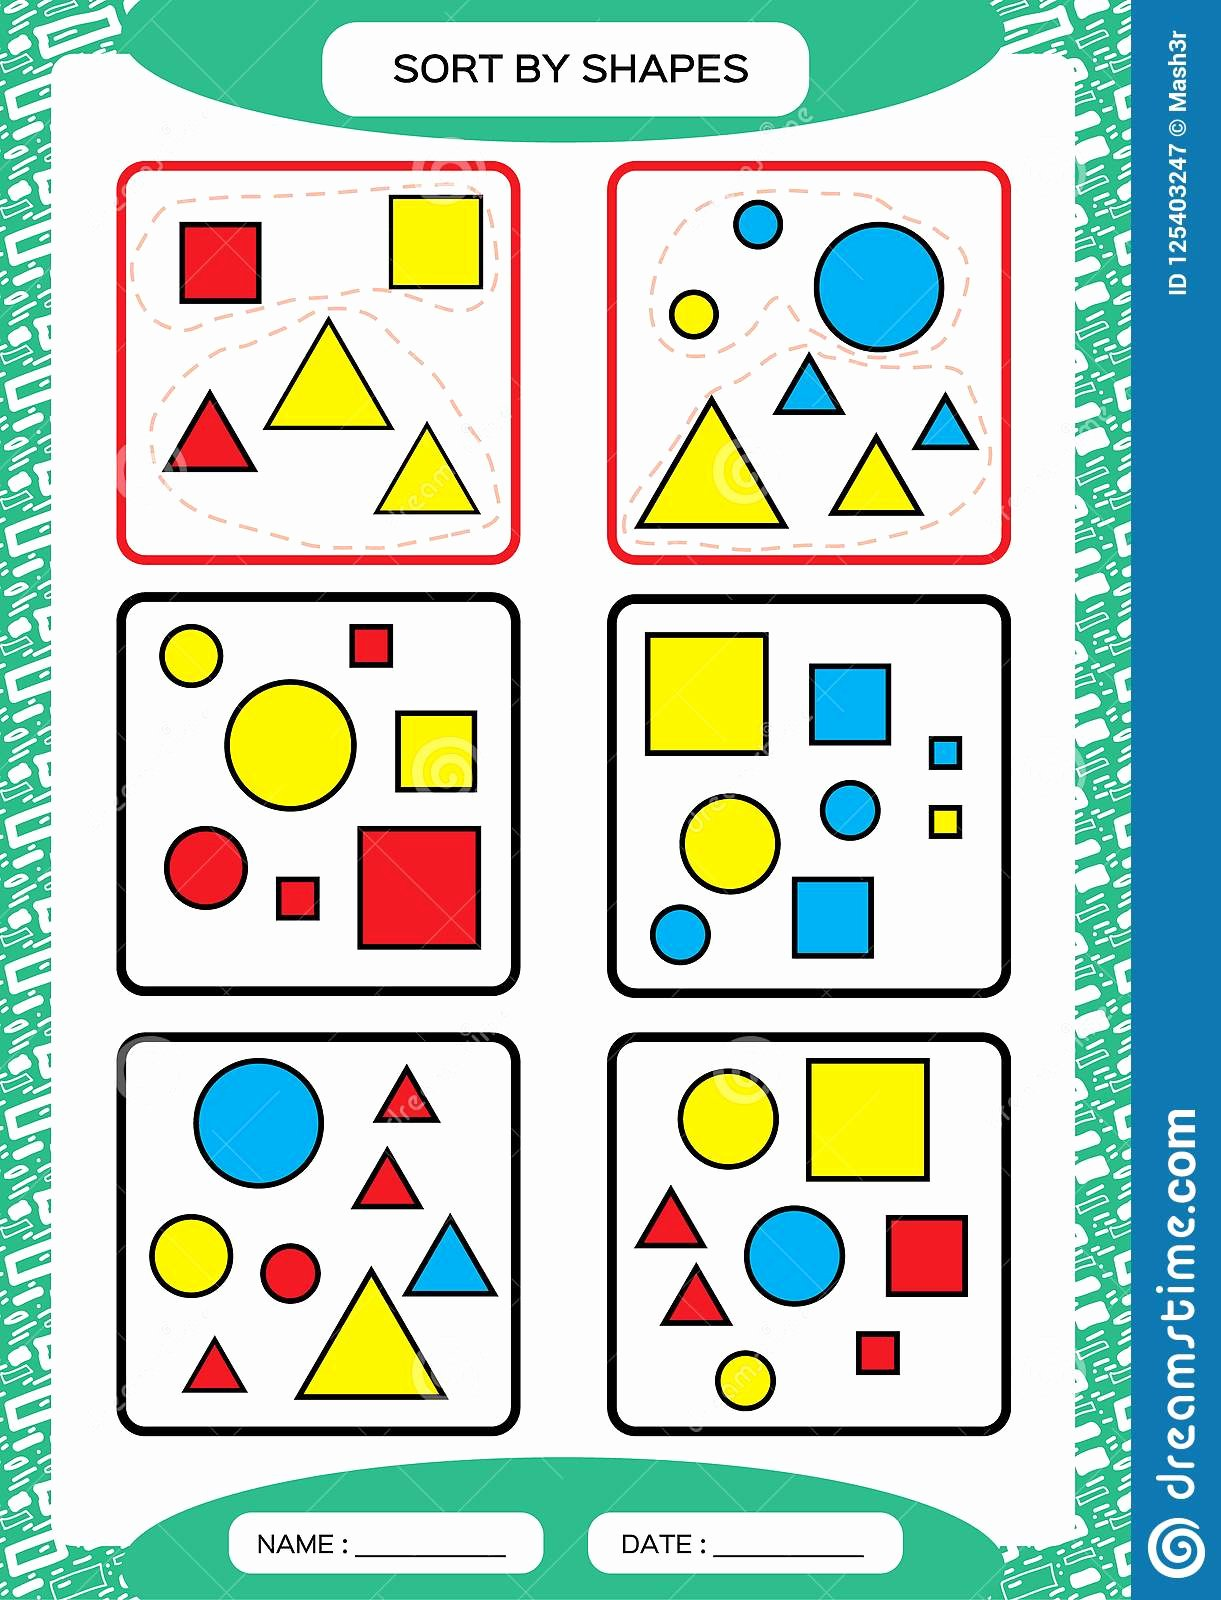 Sorting Worksheets for Preschoolers Beautiful sort by Shapes sorting Game Group by Shapes Square